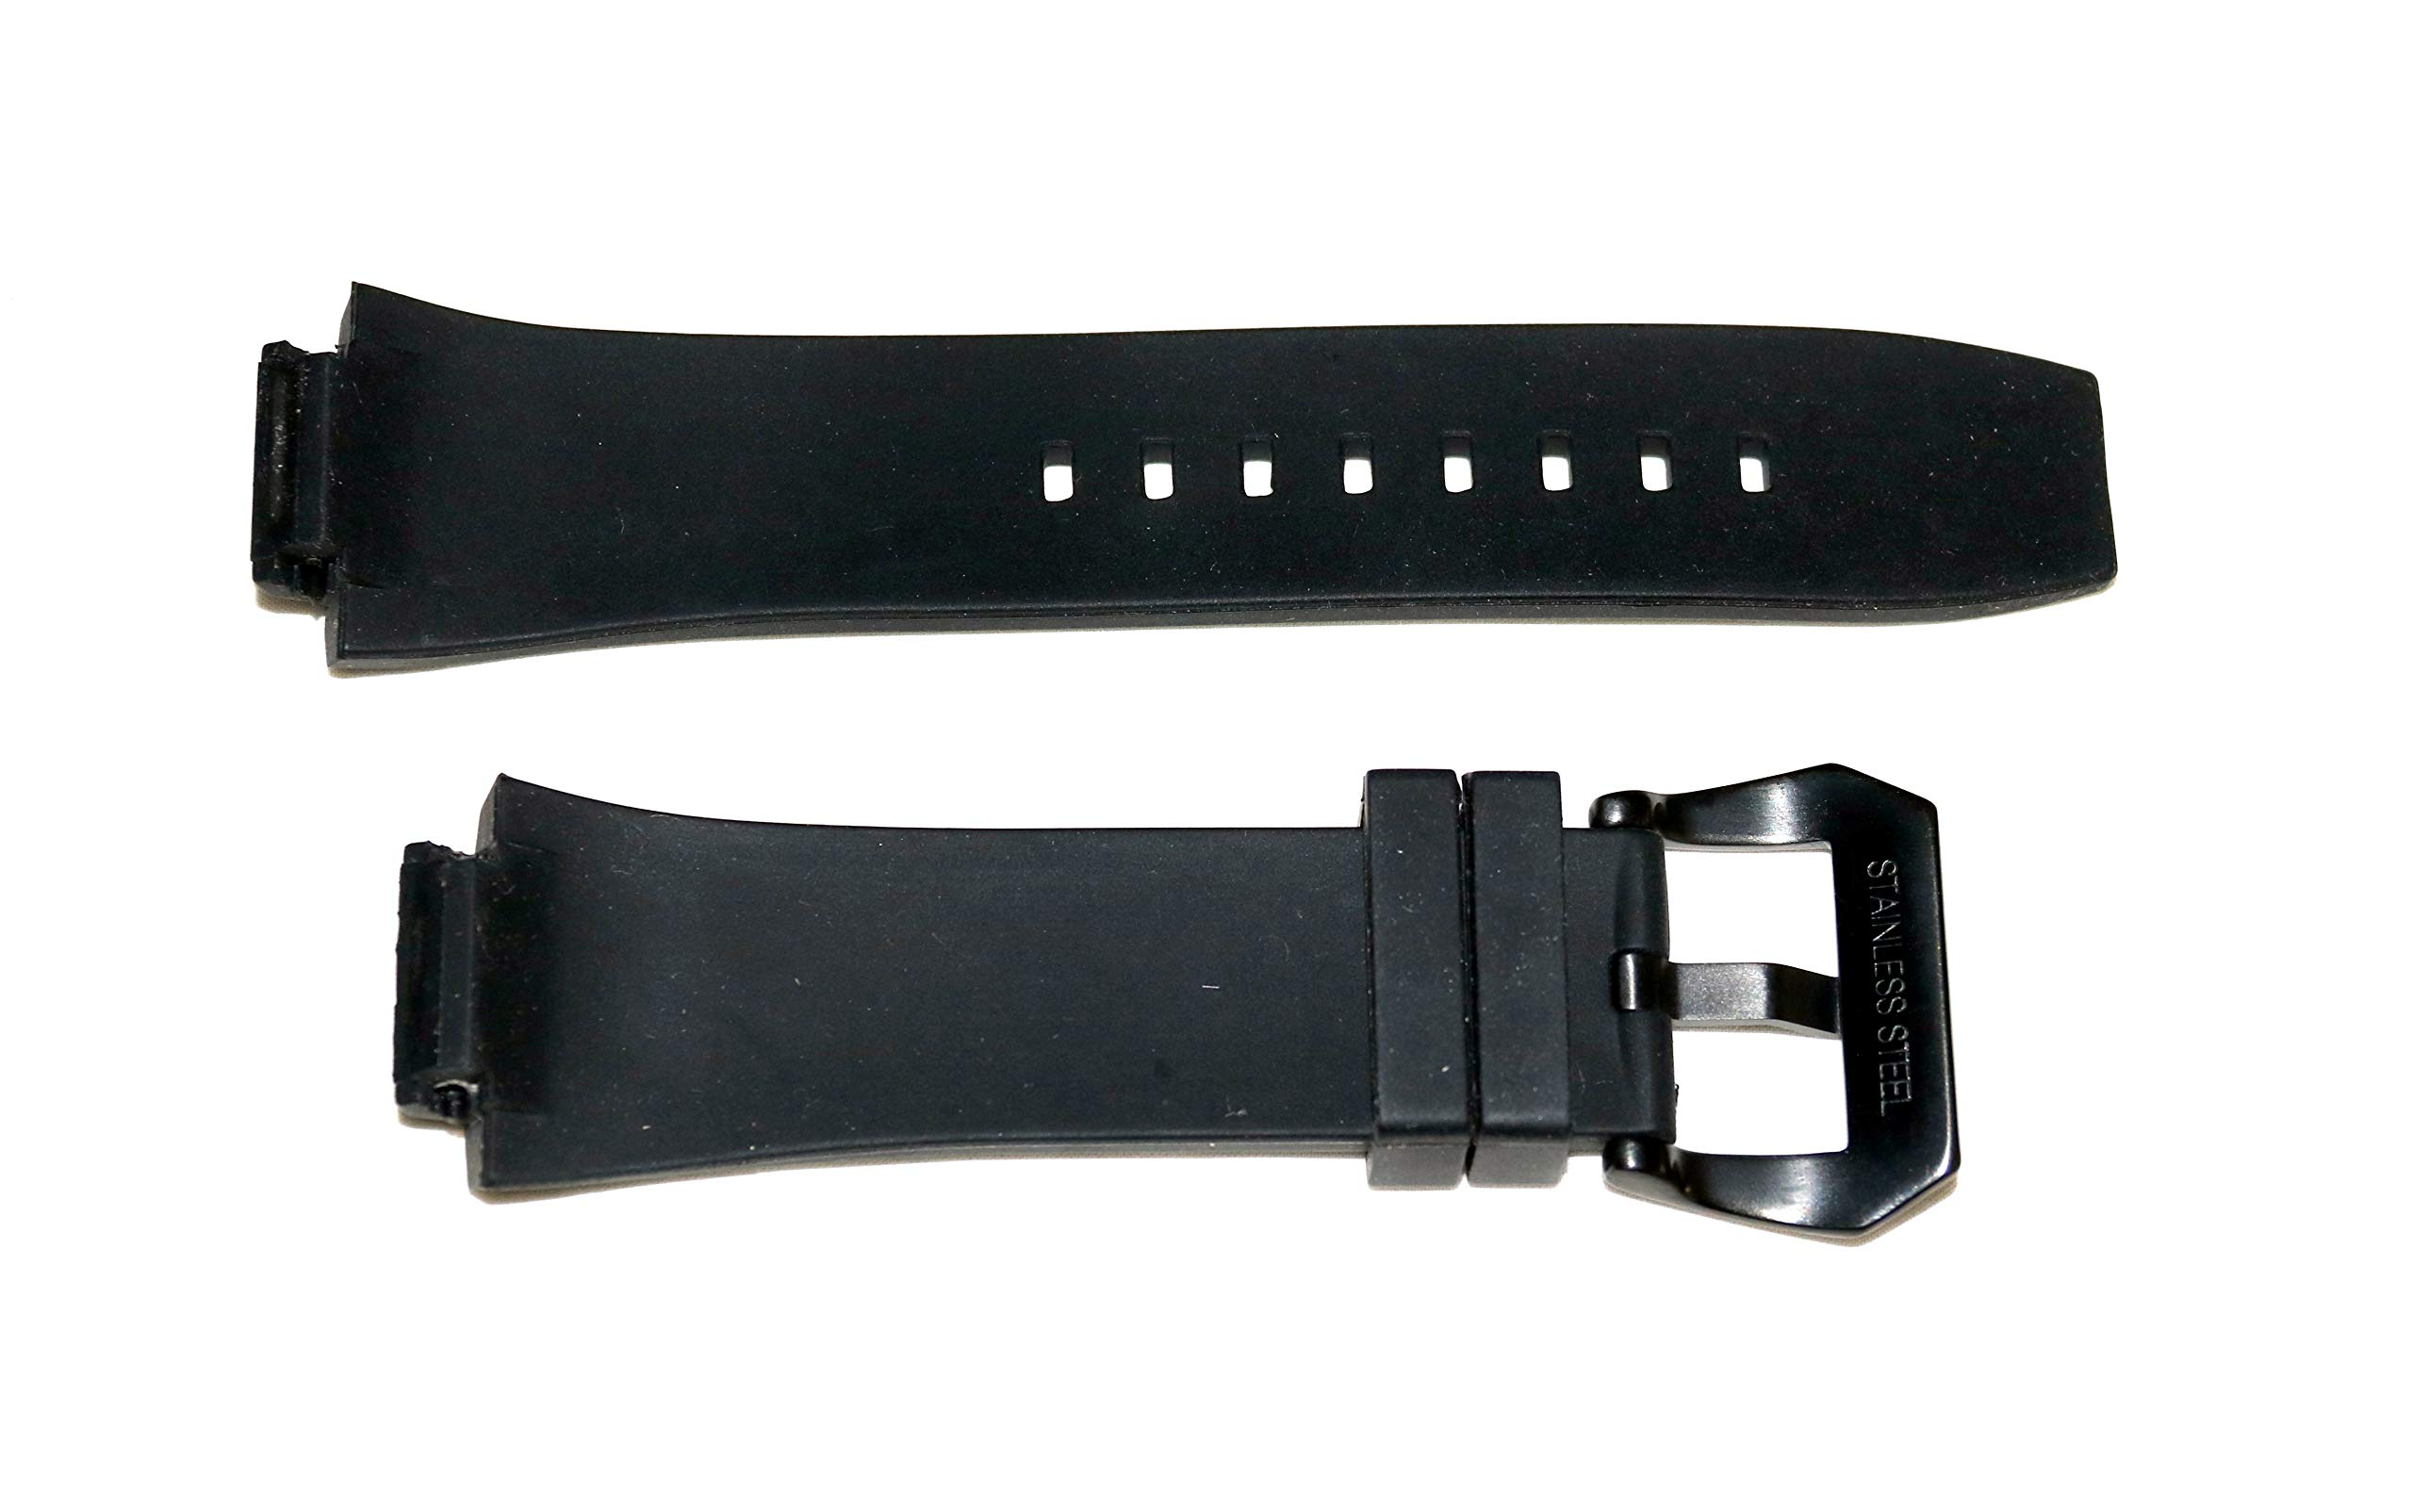 Swiss Legend 28MM Black Silicone Watch Strap Black Stainless Buckle fits 44mm Trimix Diver Watch by SWISS LEGEND (Image #4)